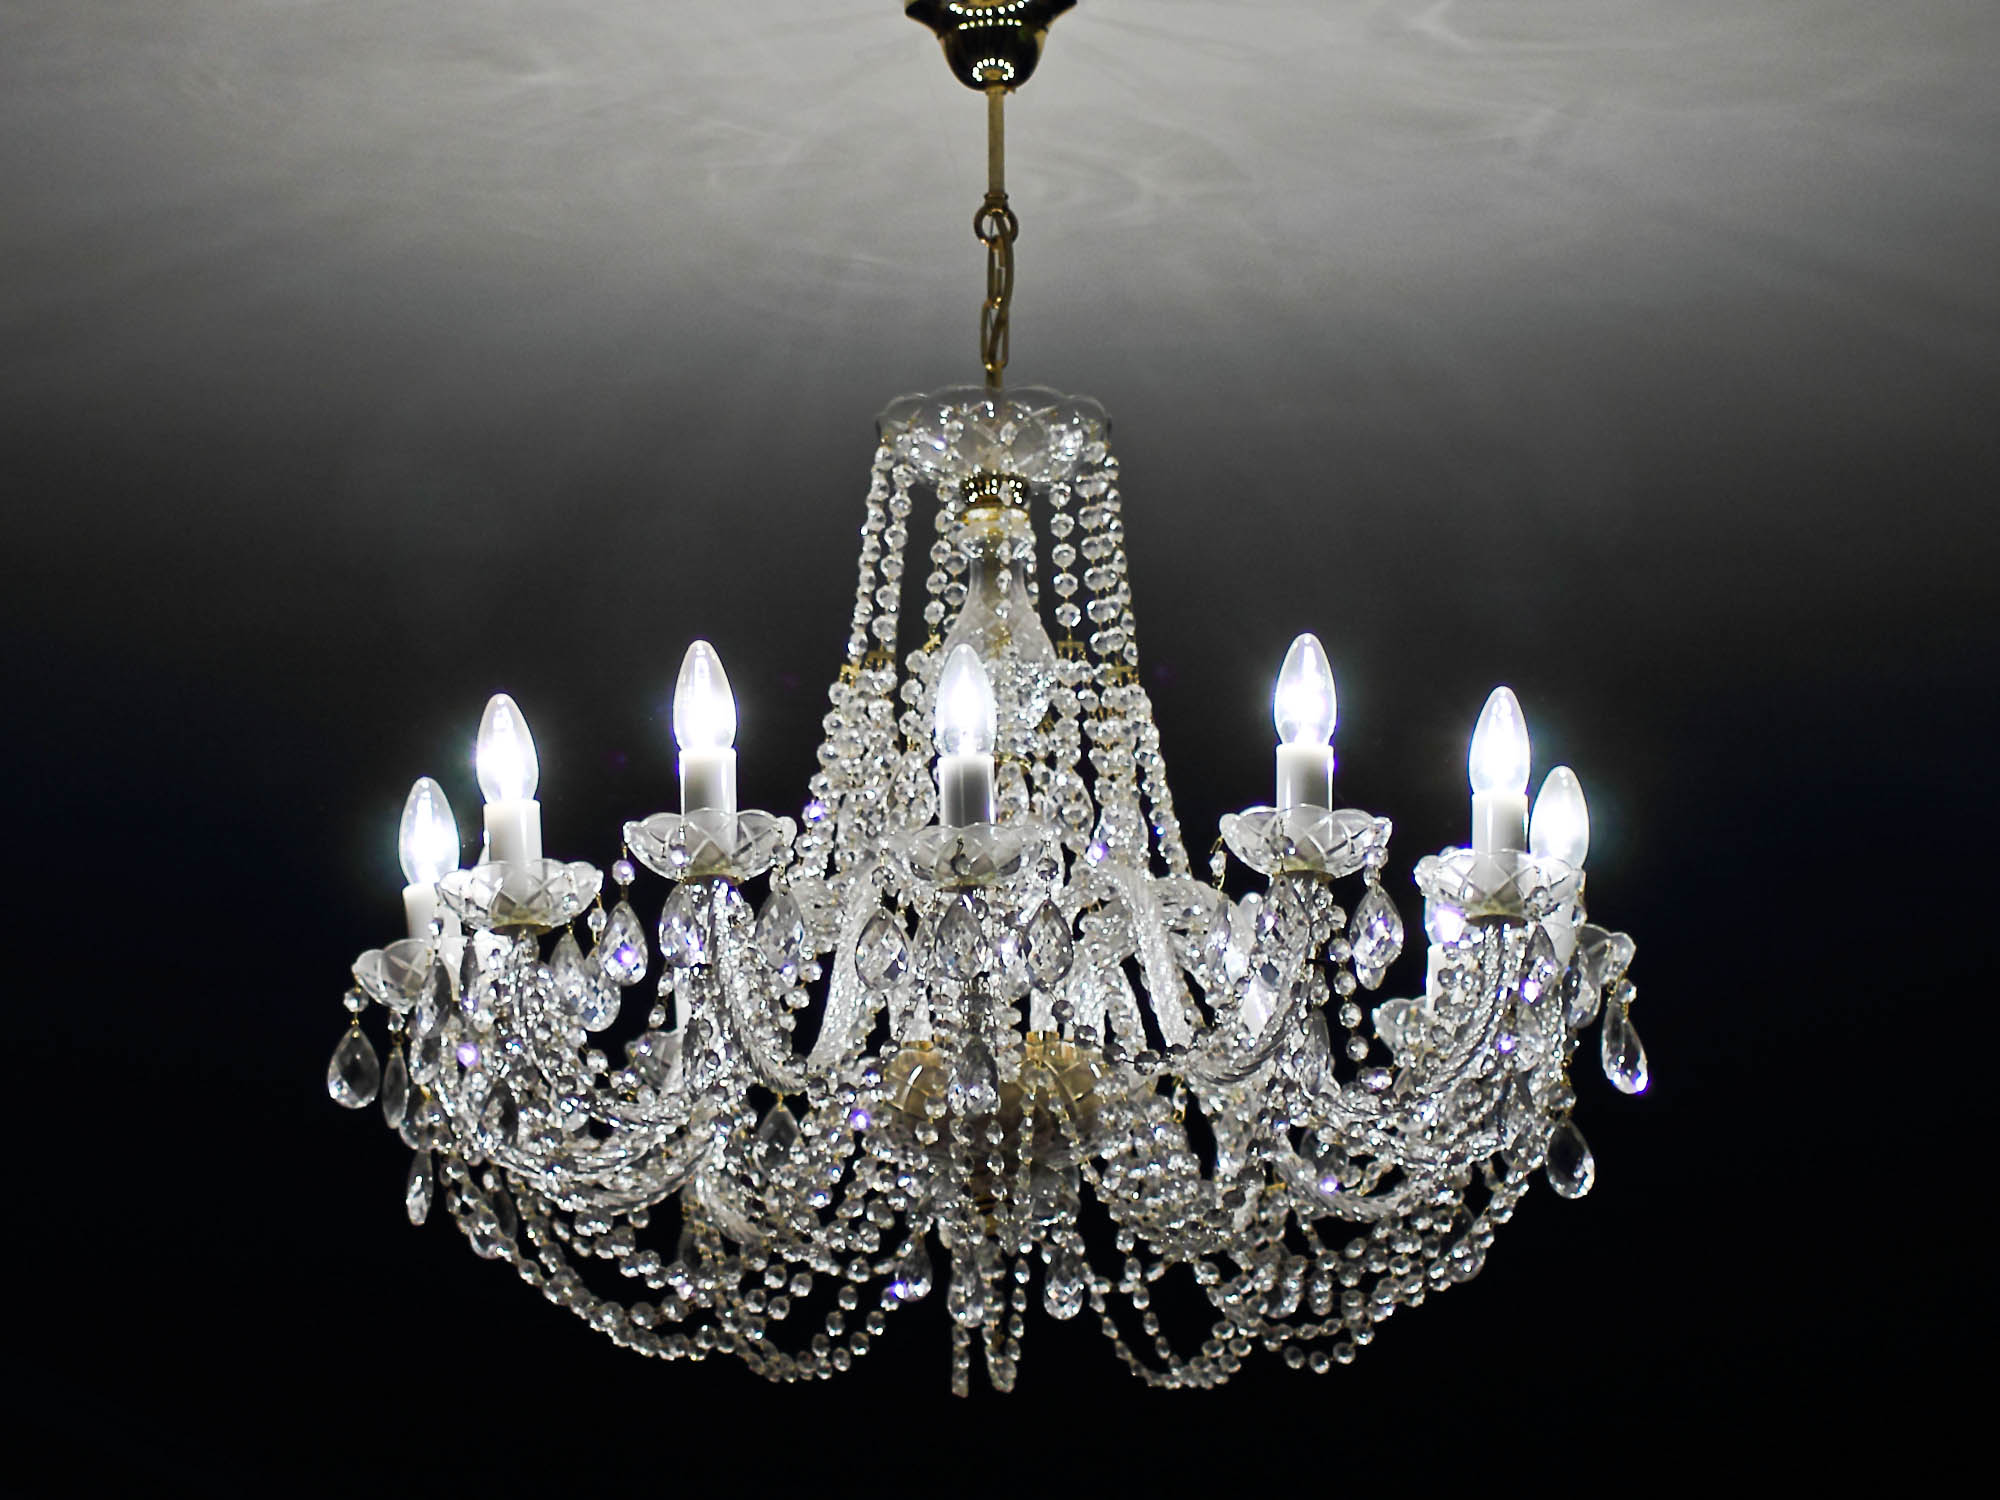 Soviet Crystal chandeliers